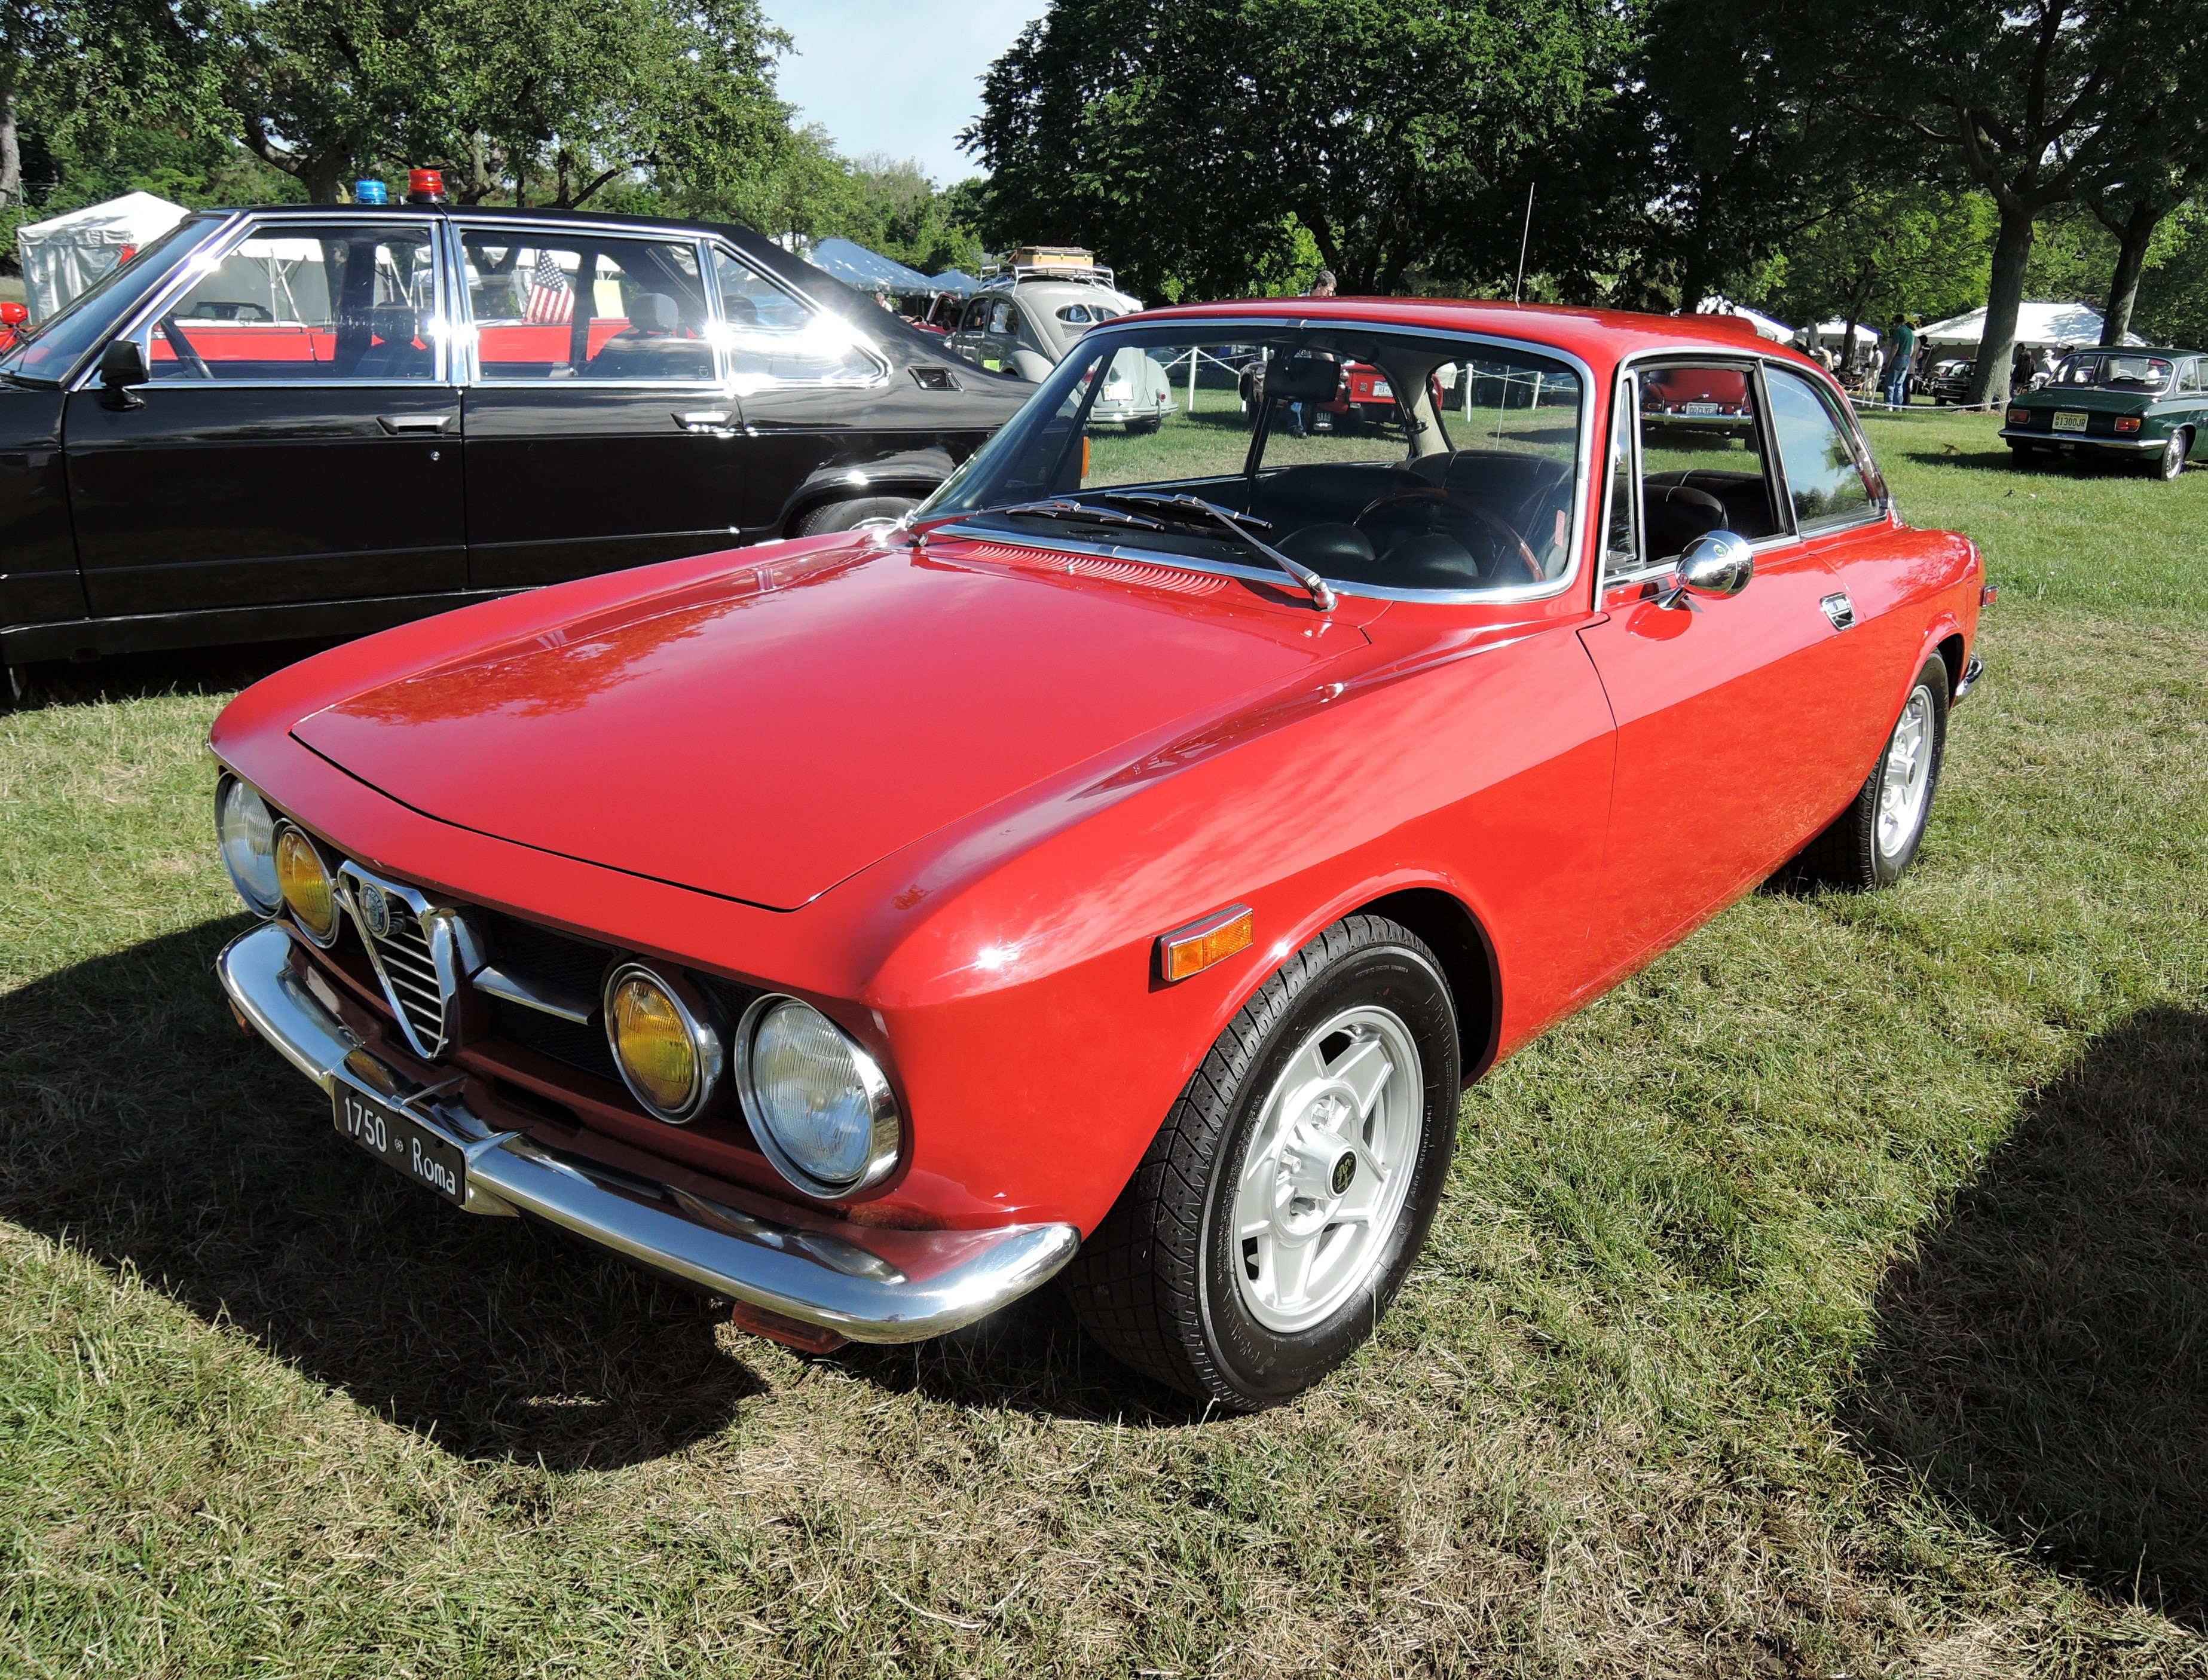 red 1971 Alfa Romeo 1750 GTV Coupe - Greenwich Concours d'Elegance 2017